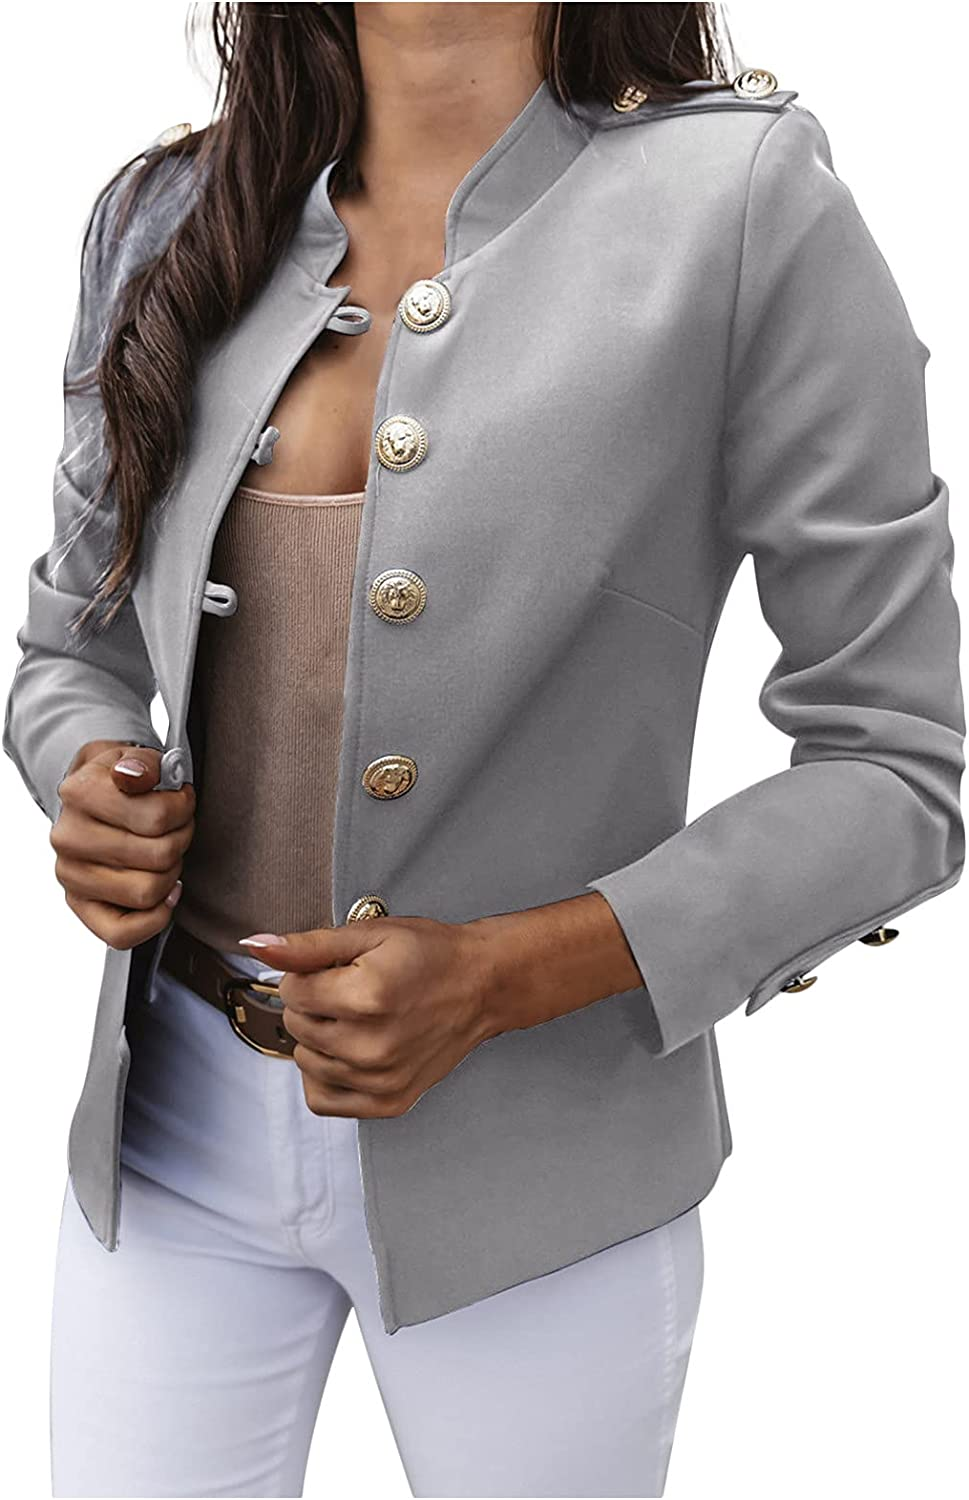 famous ameIAEA Womens Casual Blazers Open Long Front Work Office Sleeve 2021 model